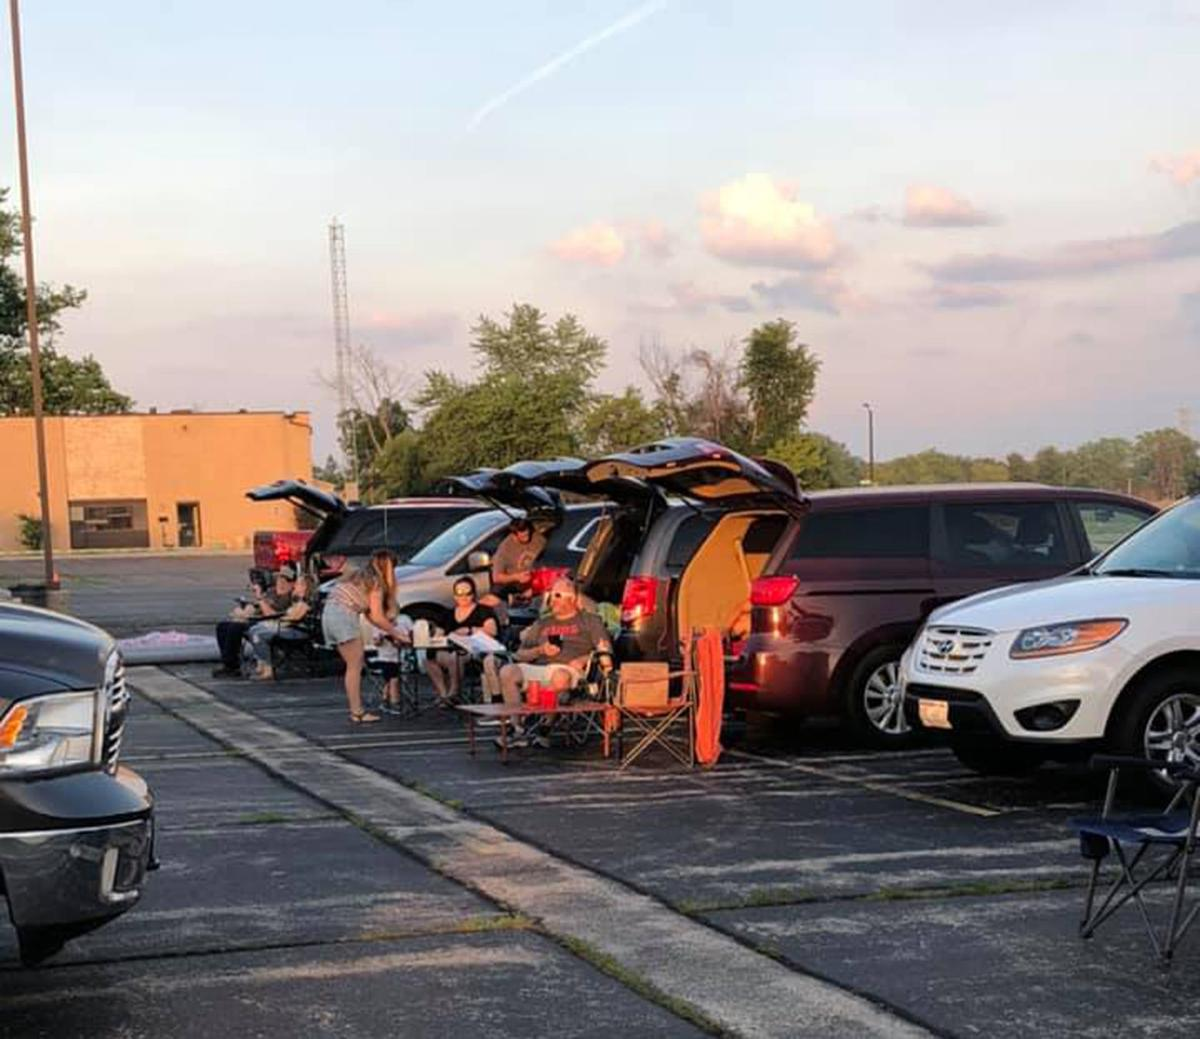 Shalom Center plans second drive-in movie night